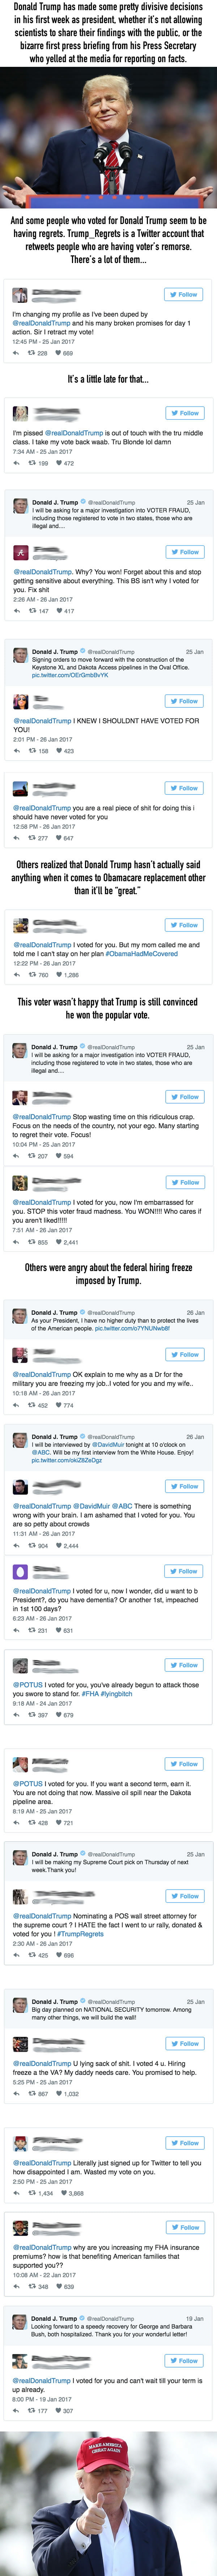 Twitter Is Full Of Trump Voters Who Regret Their Decision And It's Bittersweet